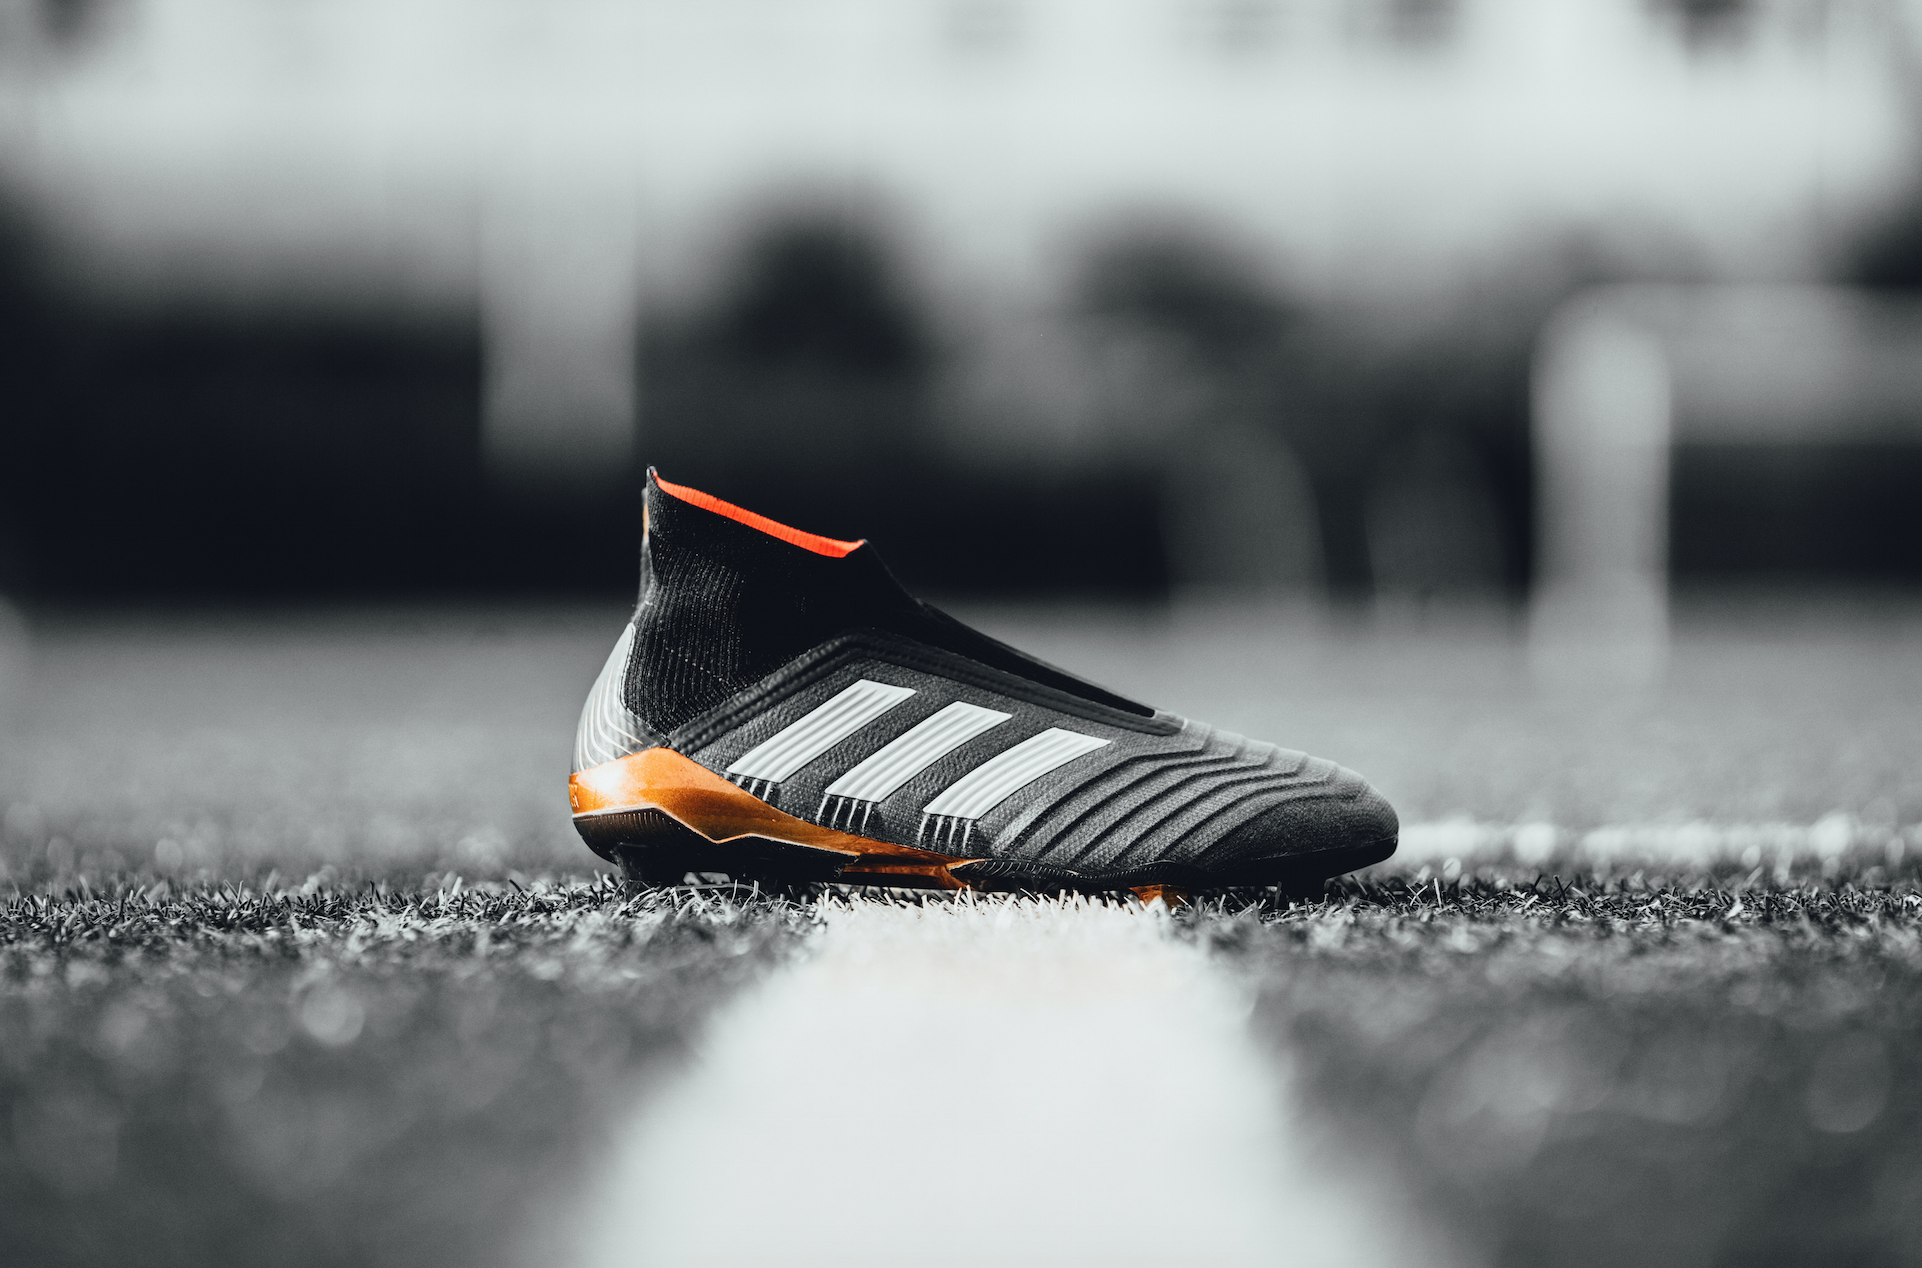 eaeb4c666e0c adidas Football Launches the All-New Predator 18+